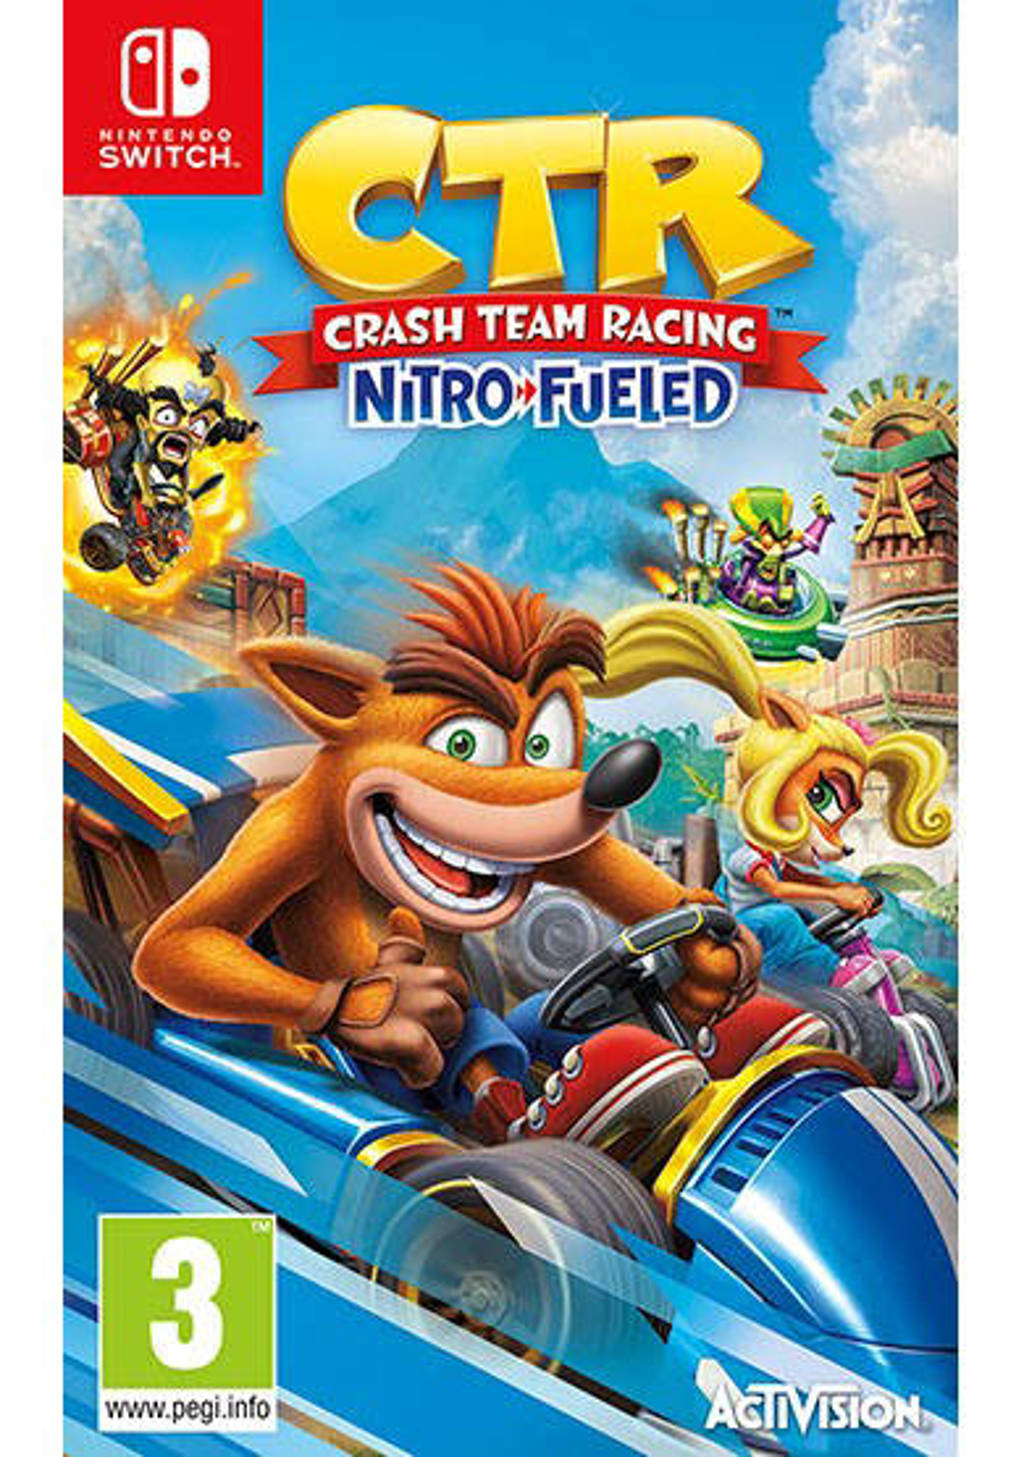 Crash team racing – Nitro Fueled  (Nintendo Switch)